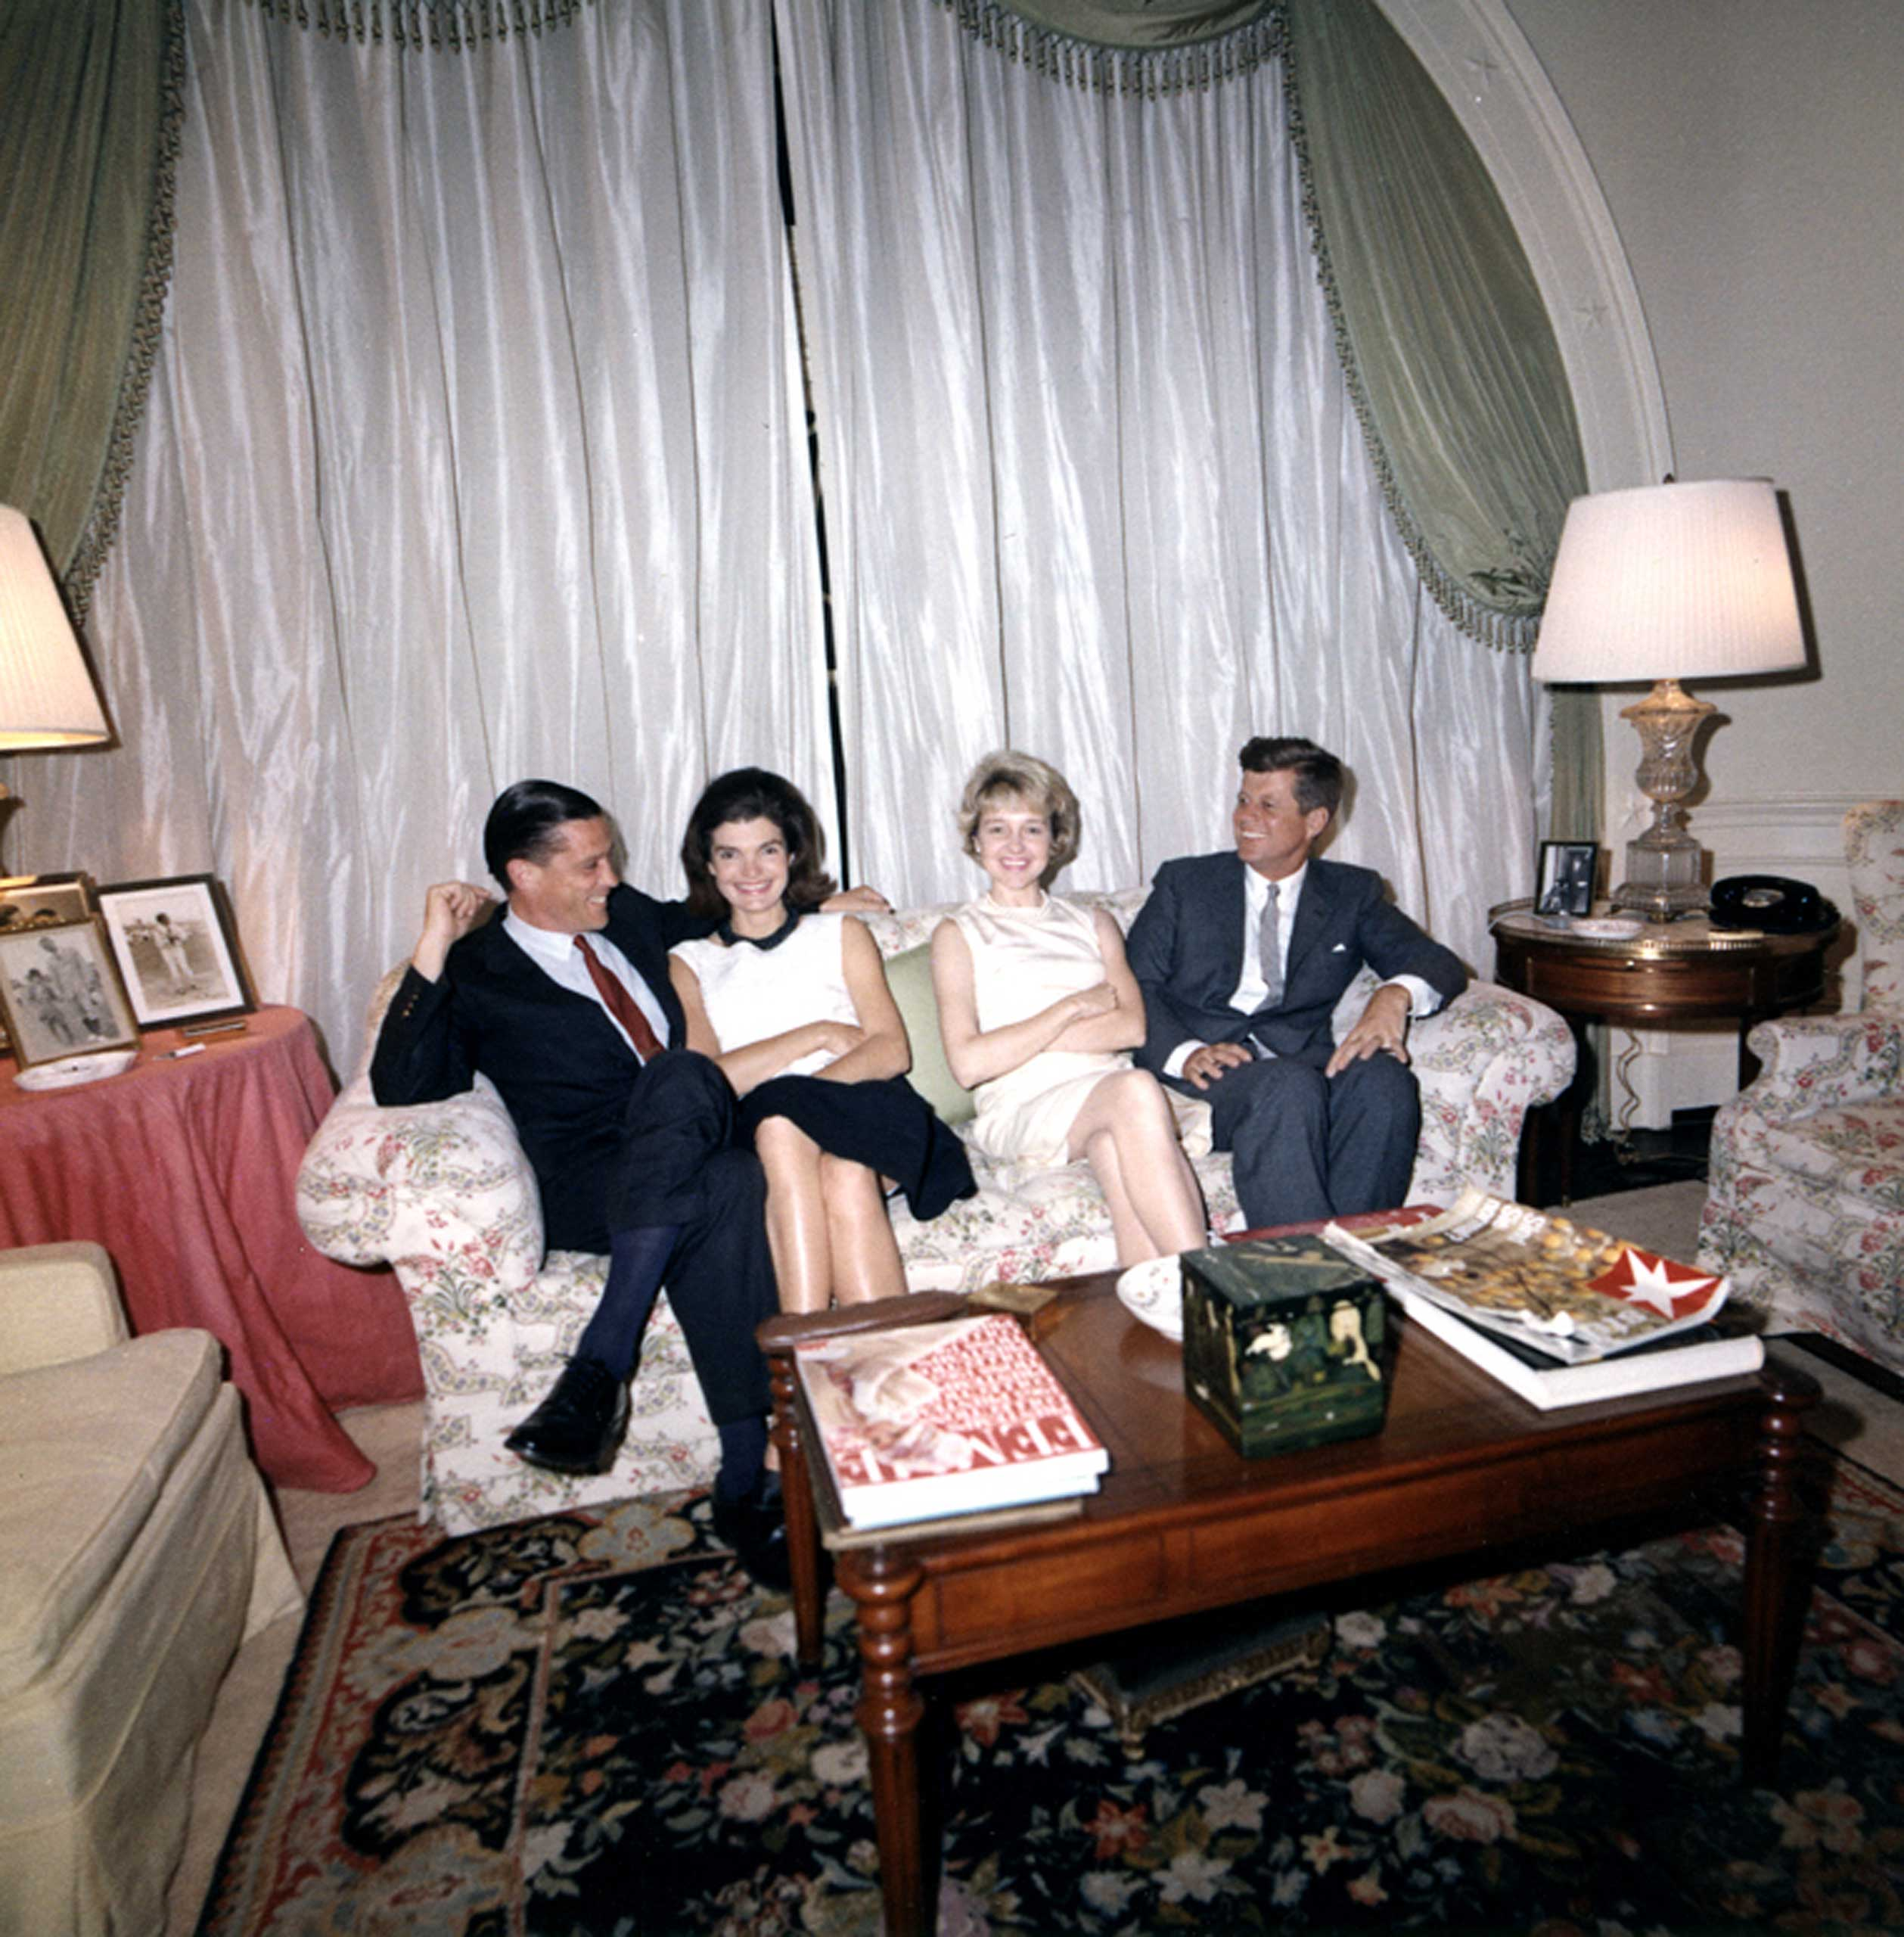 """From Left: Benjamin Bradlee, First Lady Jacqueline Kennedy, Antoinette """"Tony"""" Bradlee, and President John F. Kennedy in the White House Family Living Room on May 29, 1963 in Washington, D.C."""